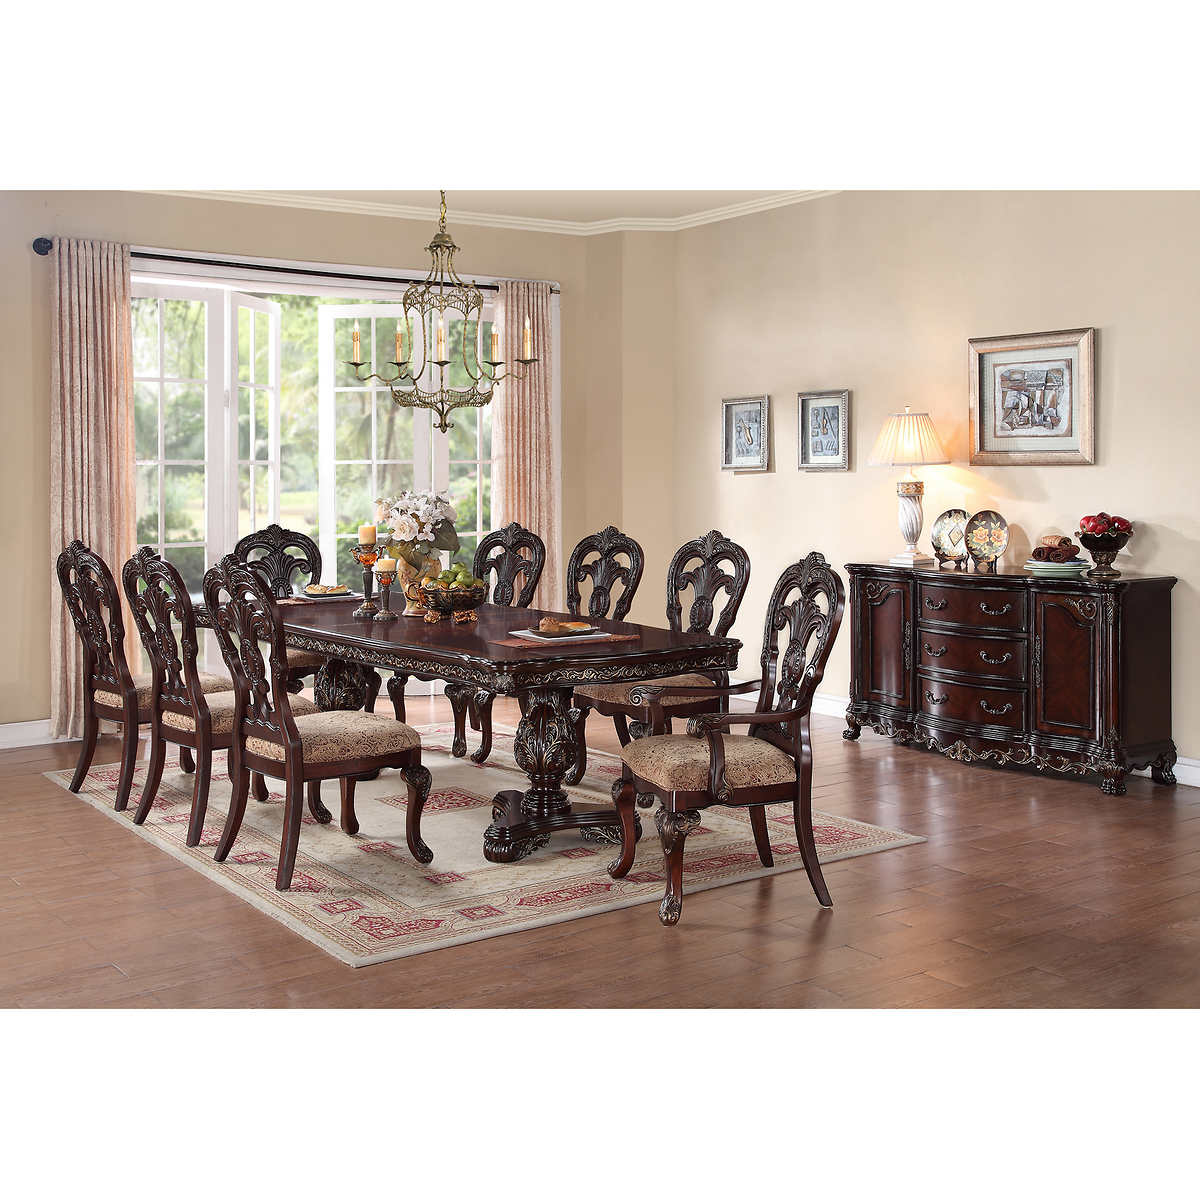 Stunning 10 piece dining room set images for Dining room sets for 10